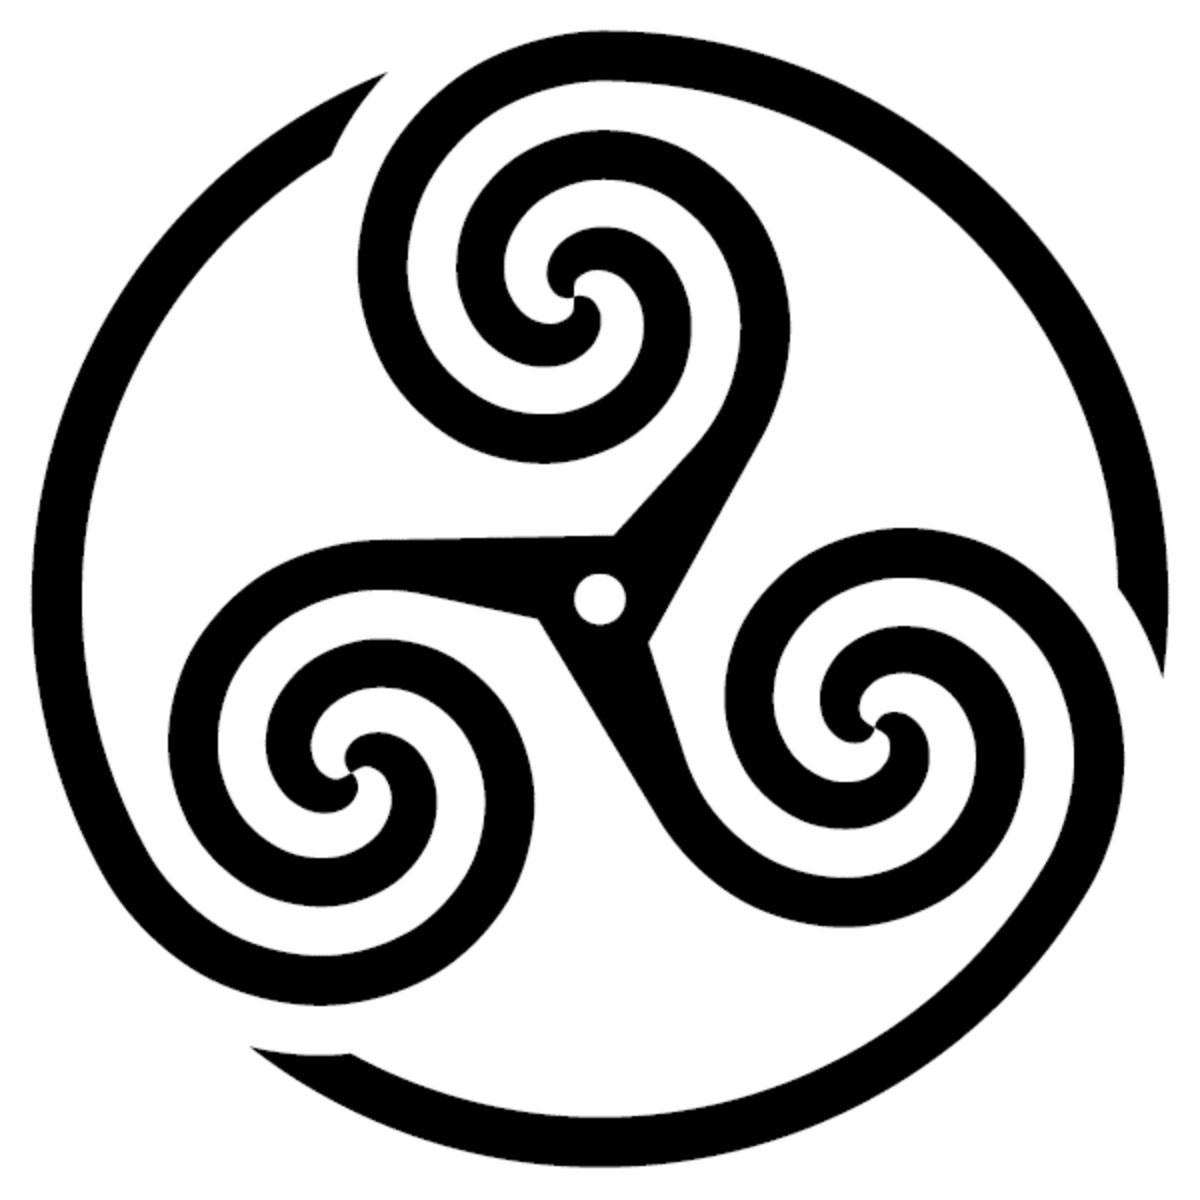 Races in Tolkien's Middle-earth: A Common Theme